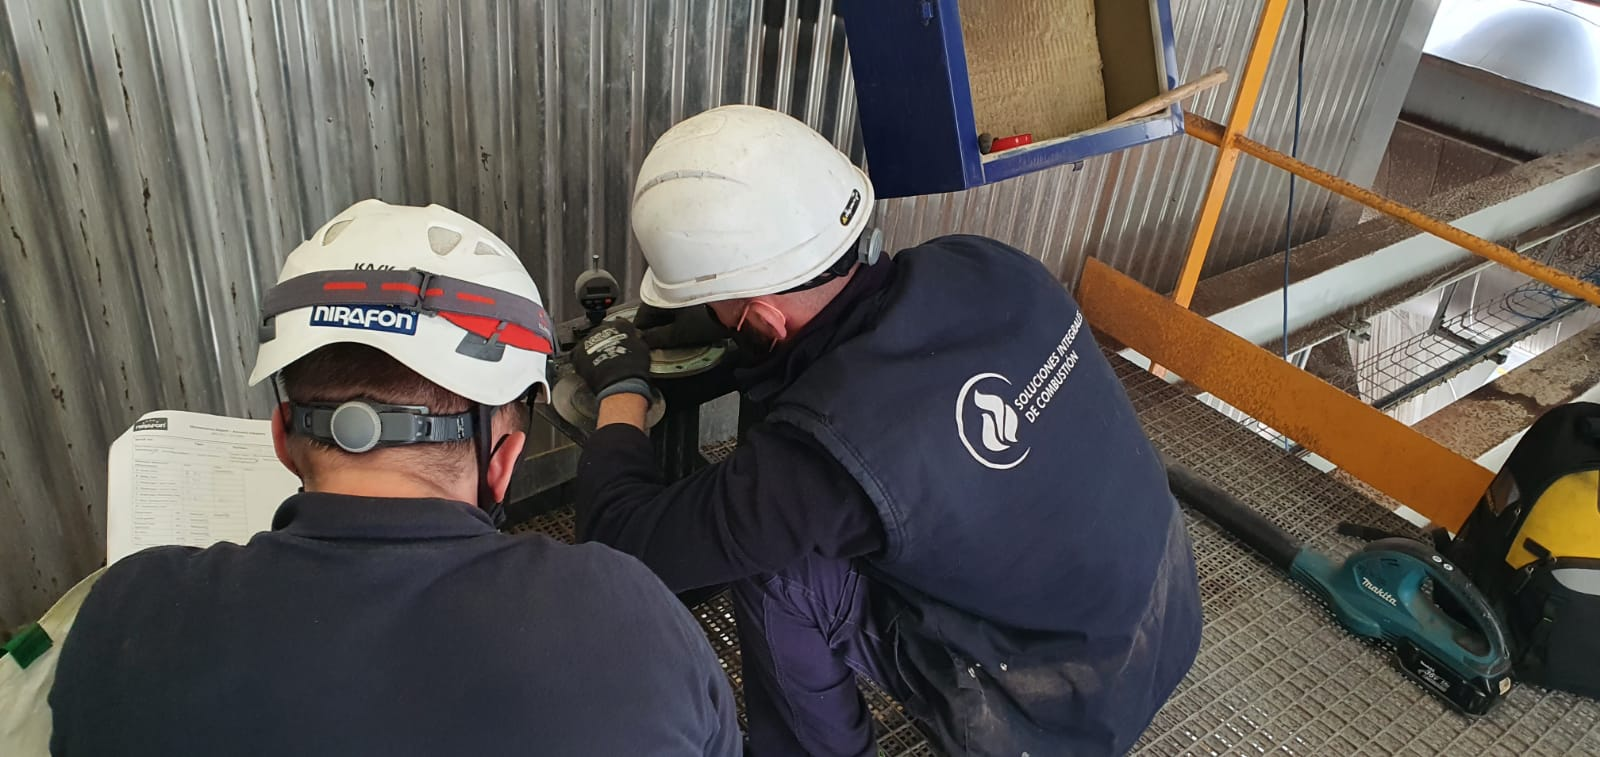 Acoustic cleaning equipment in the boiler of a biomass plant - Soluciones Integrales de Combustion